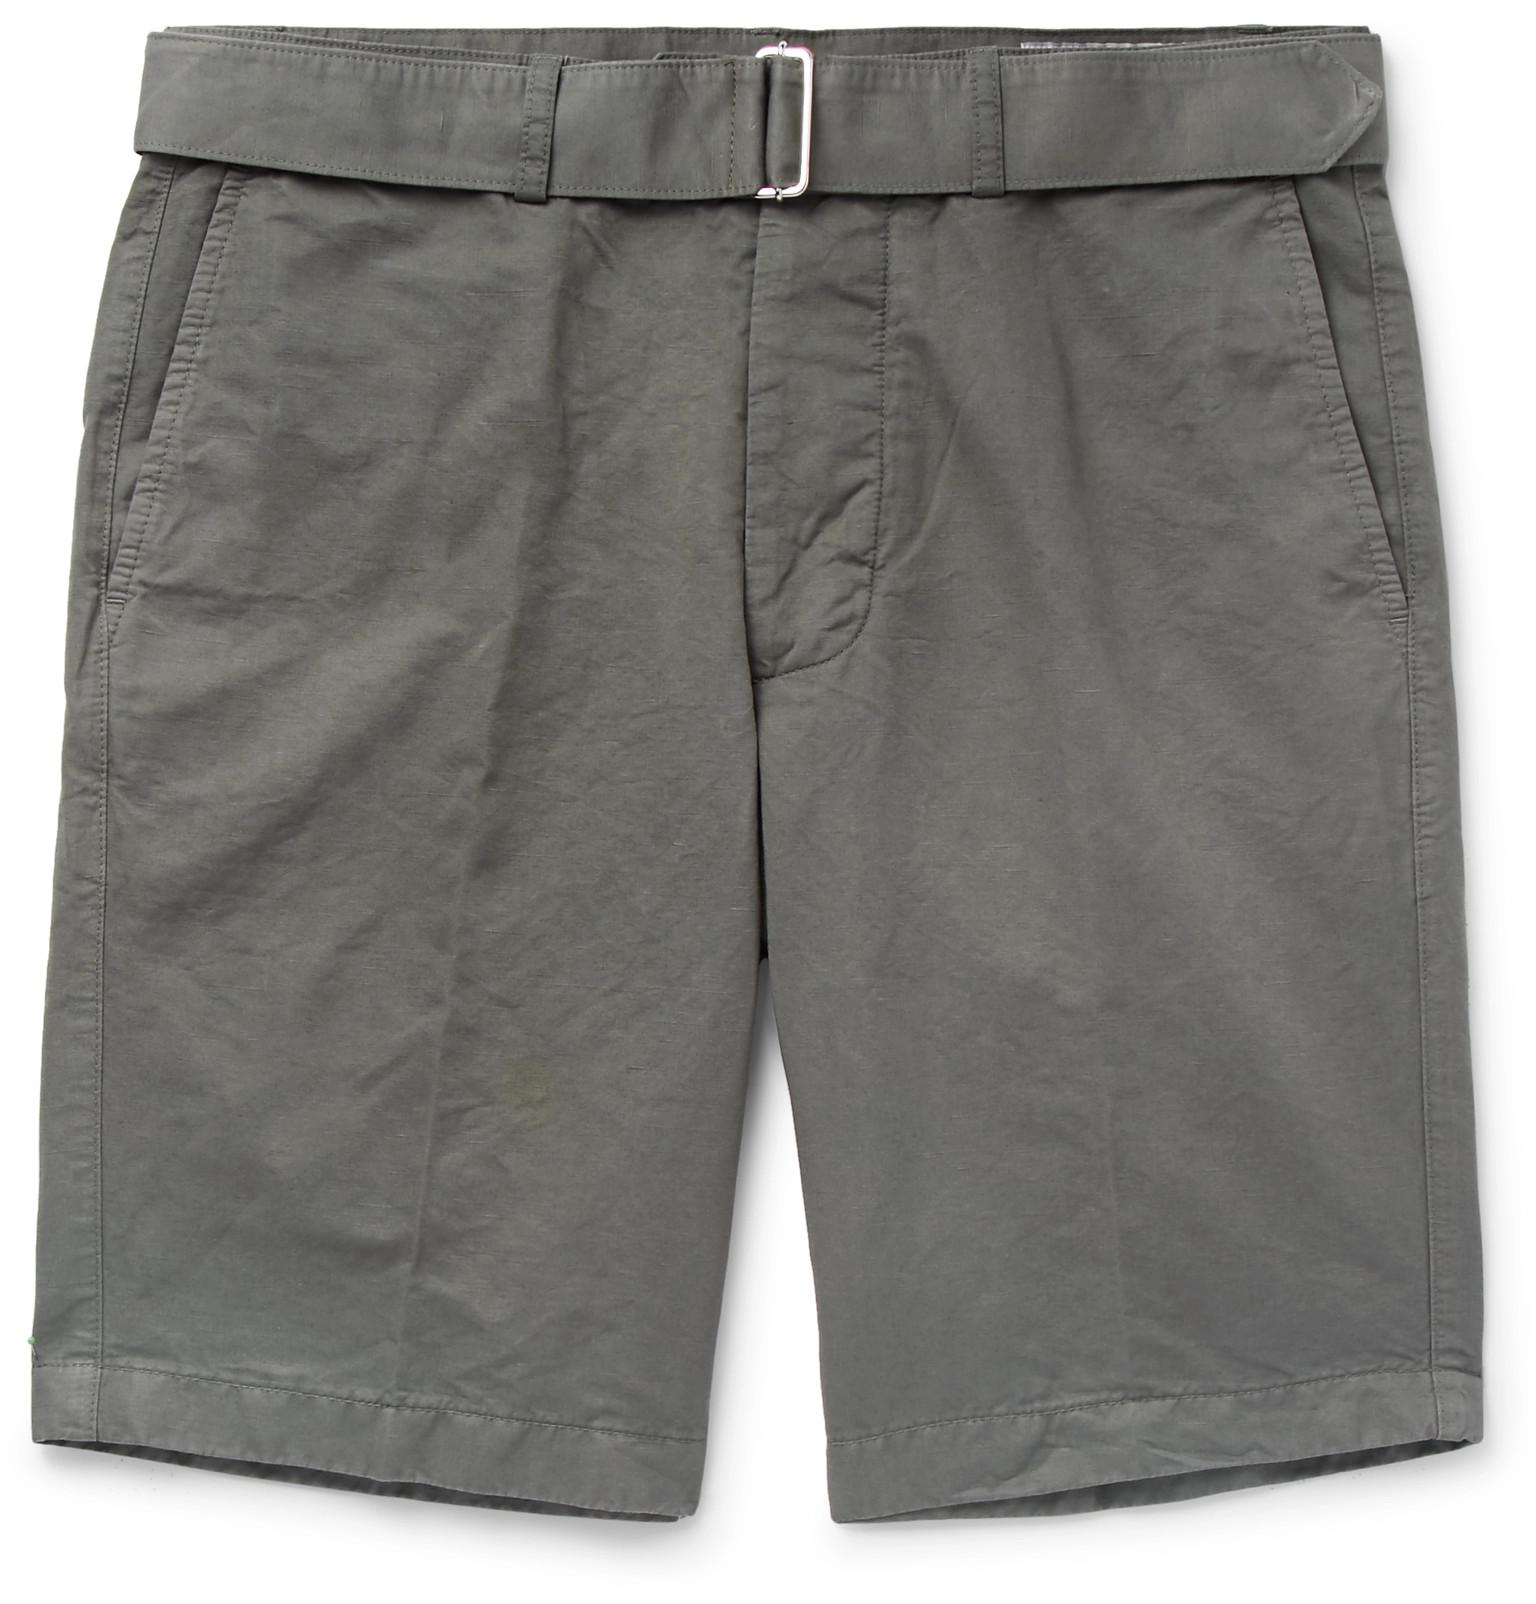 Mens Linen-Cotton Cuffed Shorts Officine Generale Outlet Fake Looking For Cheap Price Enjoy Cheap Online For Sale Y8C7nwPh